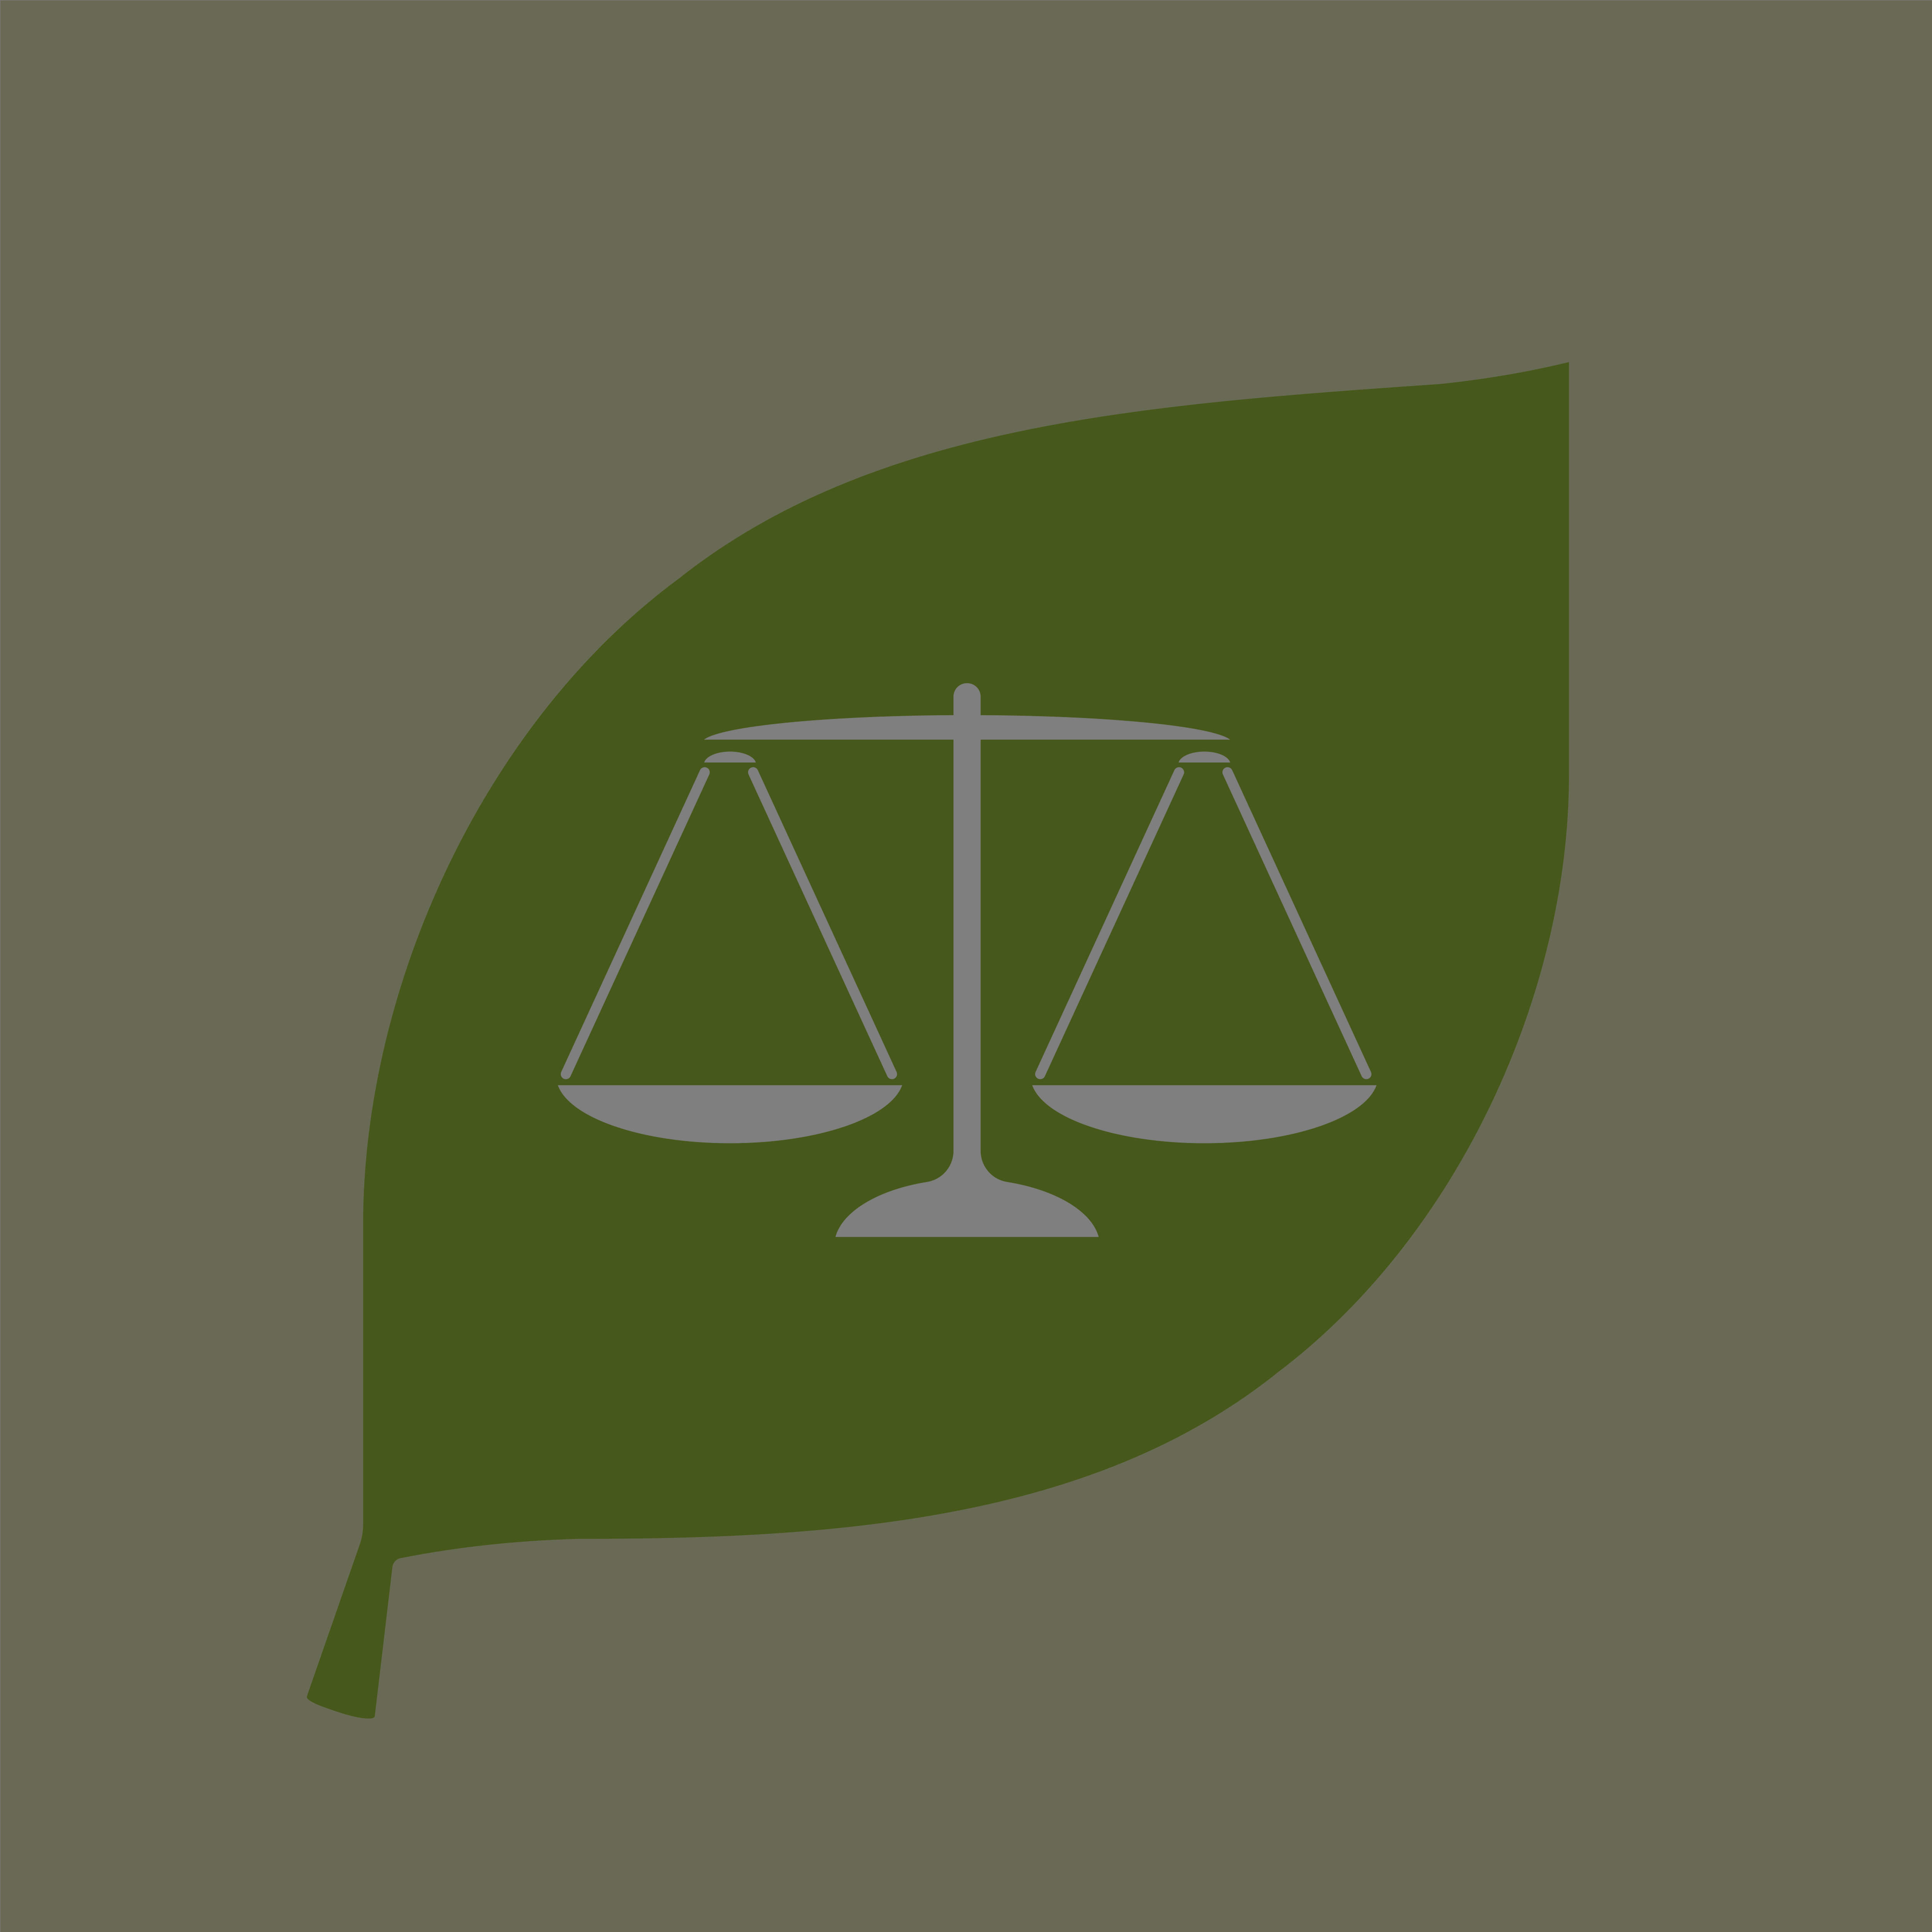 Manslaughter Sentencing Guidelines - The 5 Key Facts Every Prosecuted Garden Centre Wish They Had Known